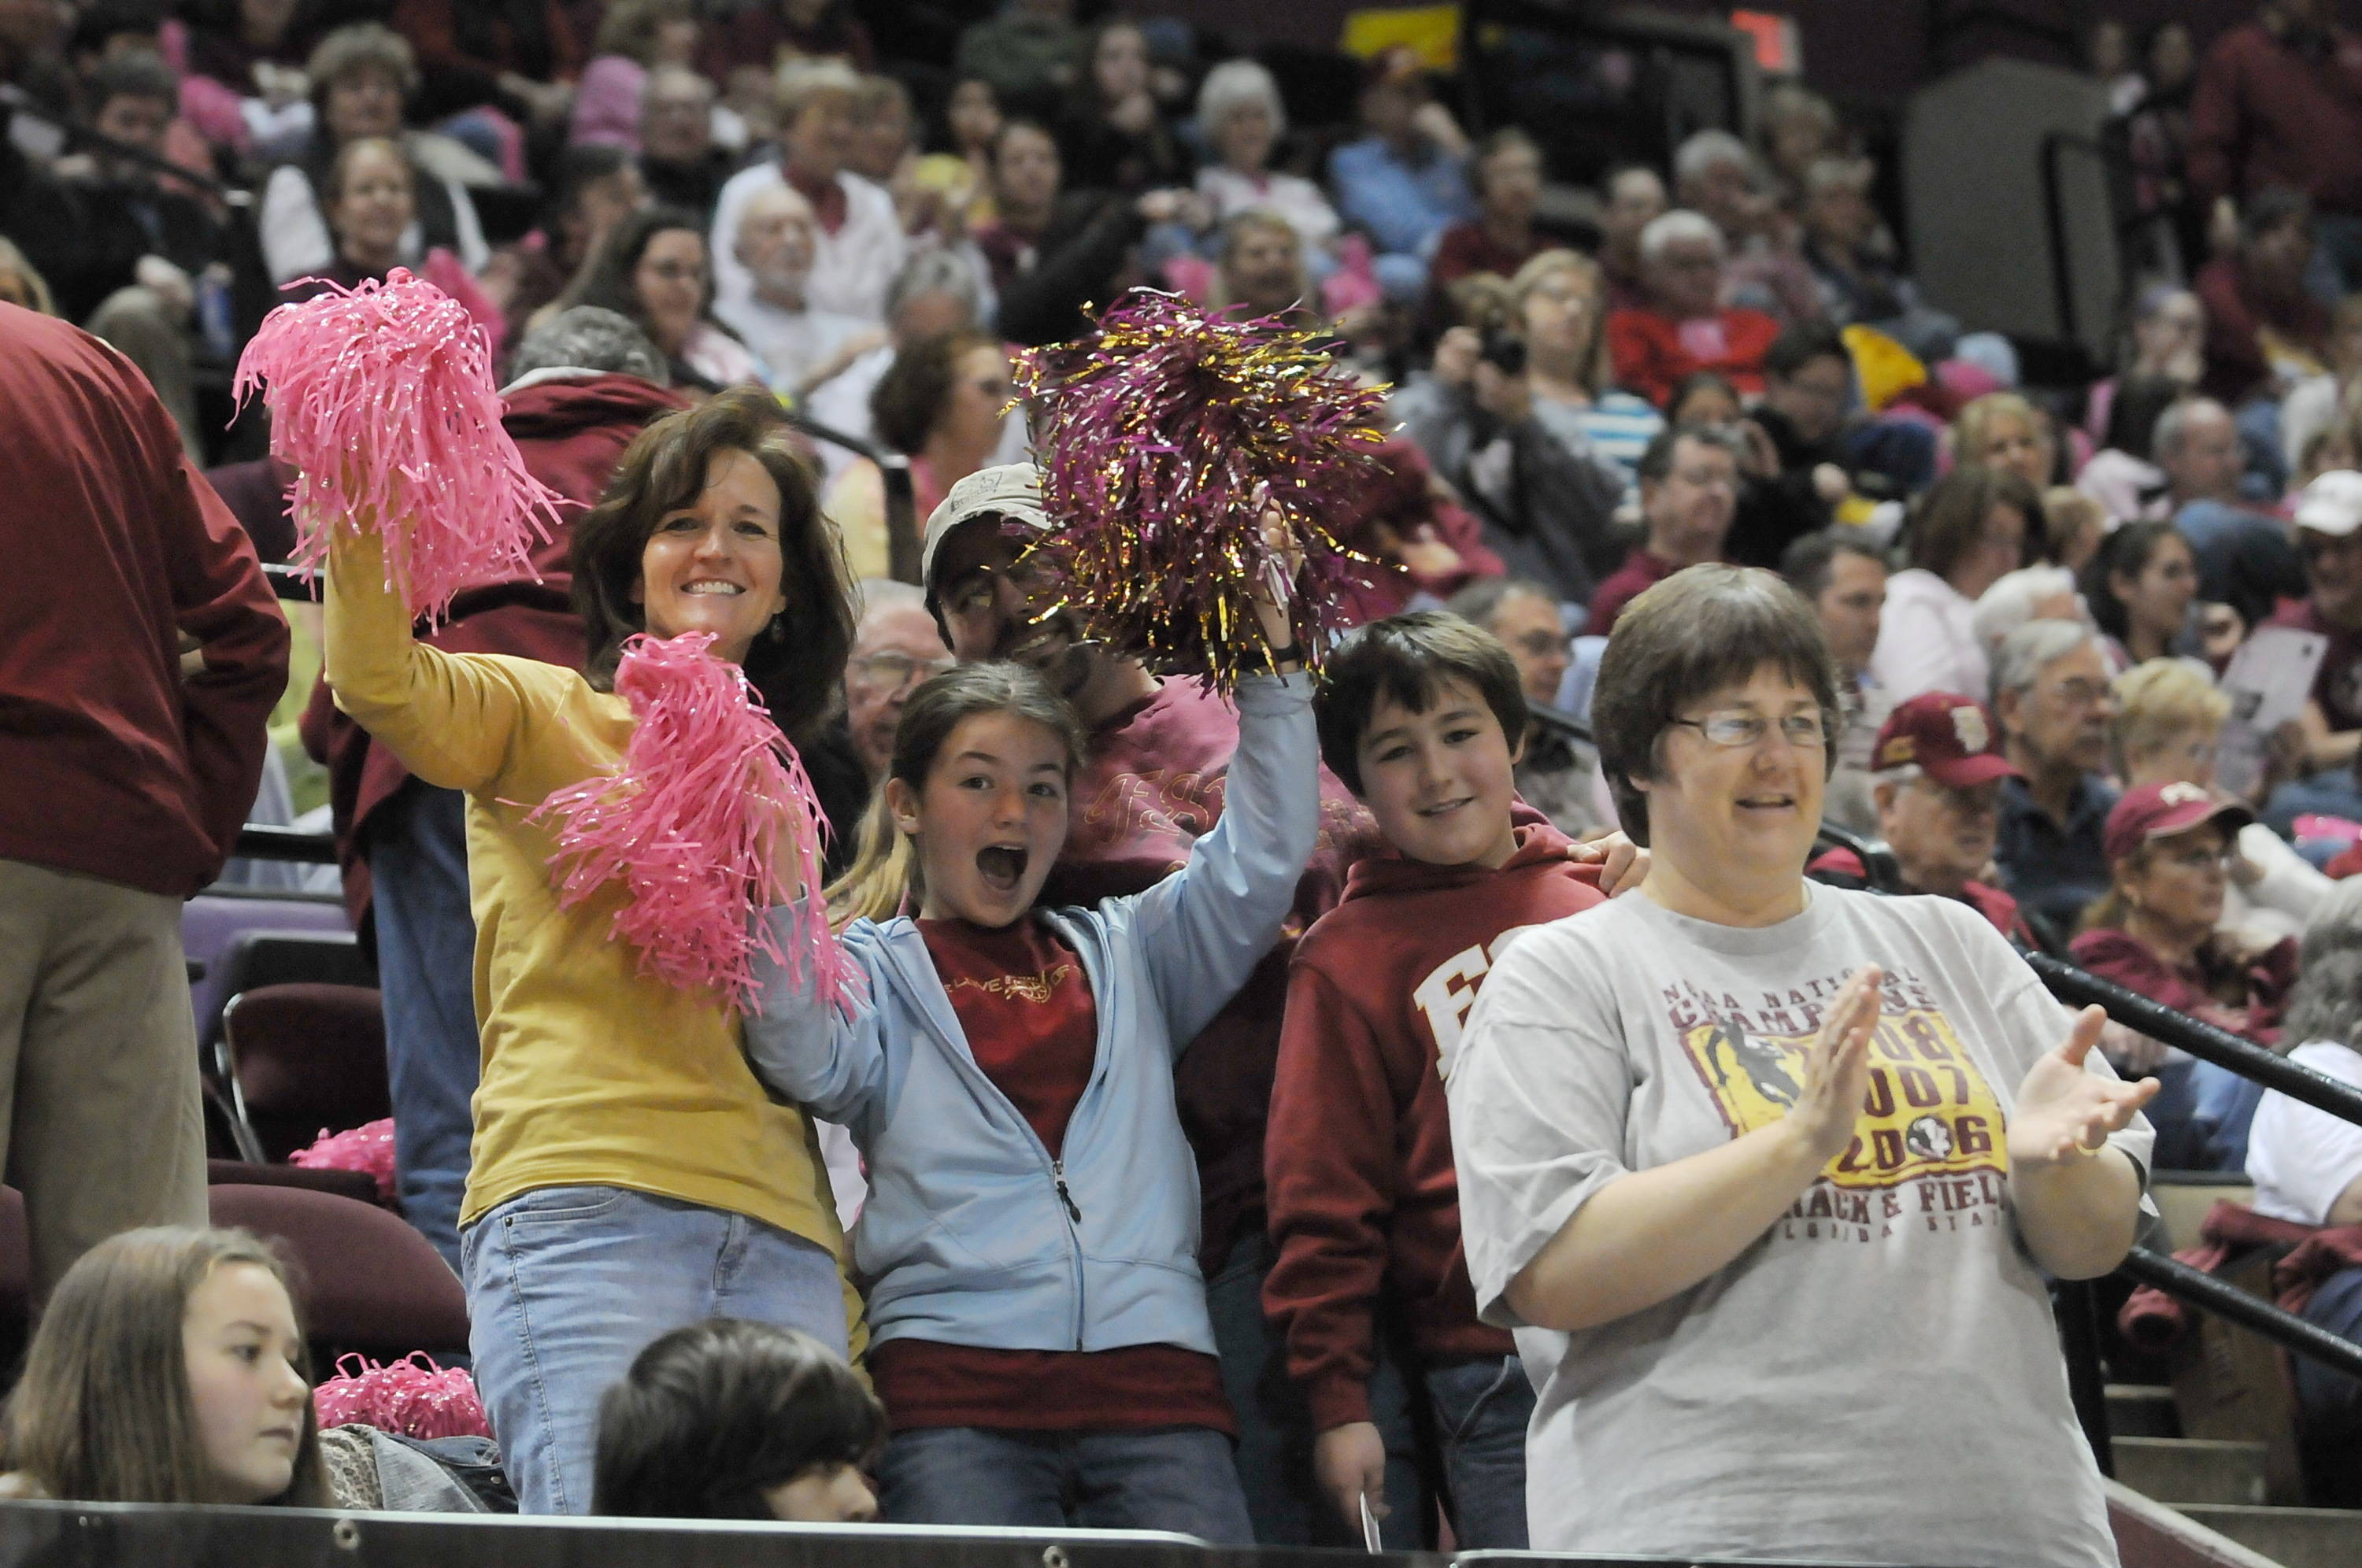 August 14 ... Florida State has the best fans in all of college basketball. The question is, are you ready to fuel FSU's fire this season? If so, get your tickets and get loud as the Seminoles begin the 2010-11 season in just a few short months.